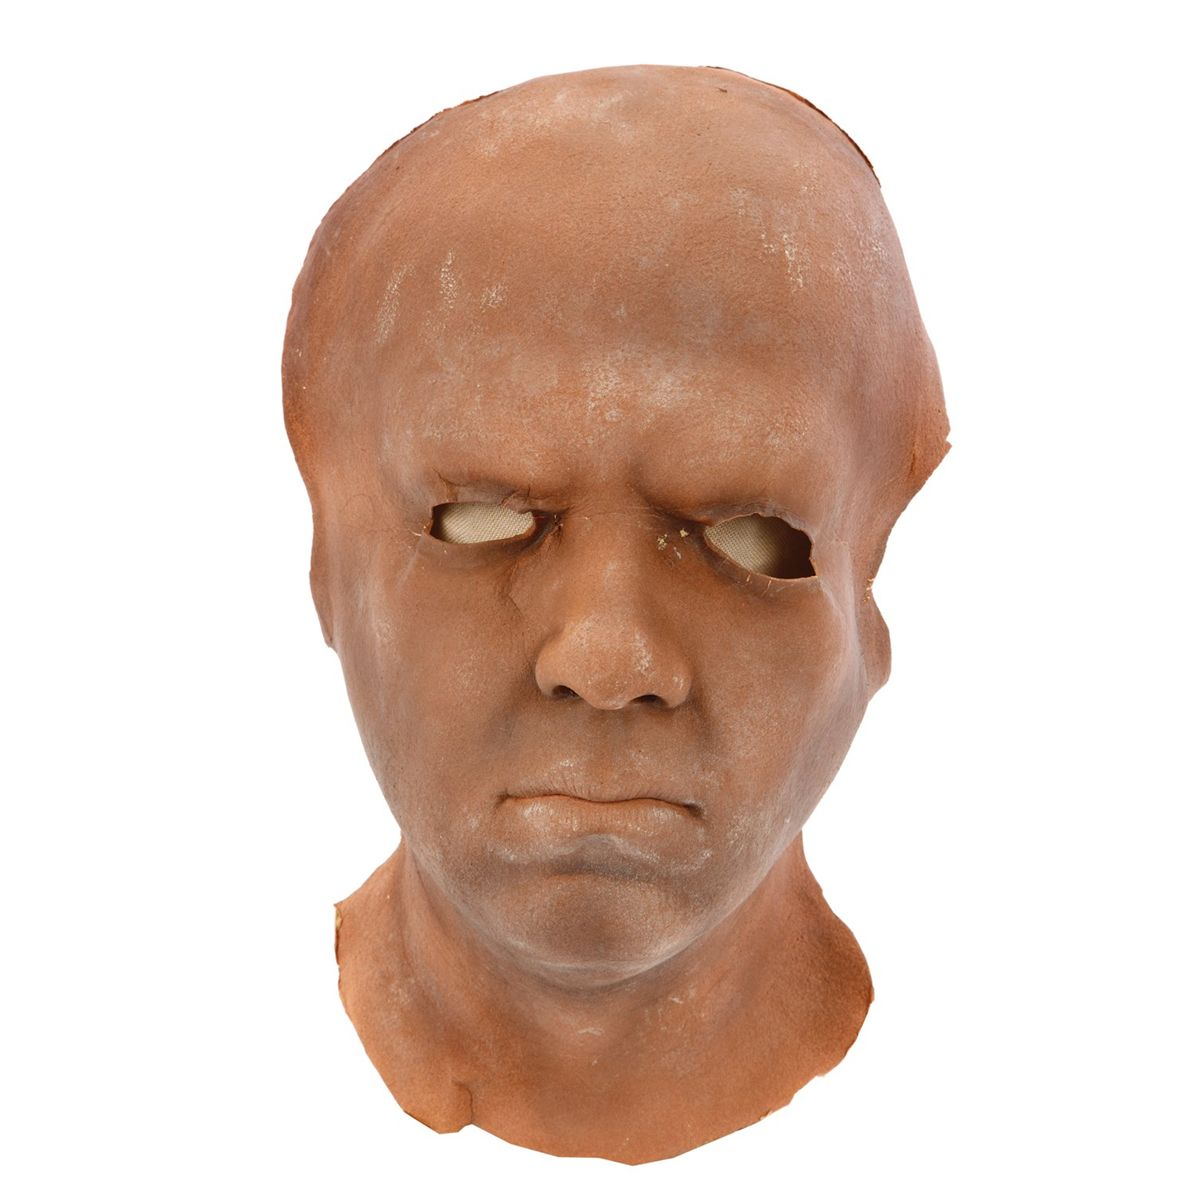 Disguise Your Face Silicone Masks